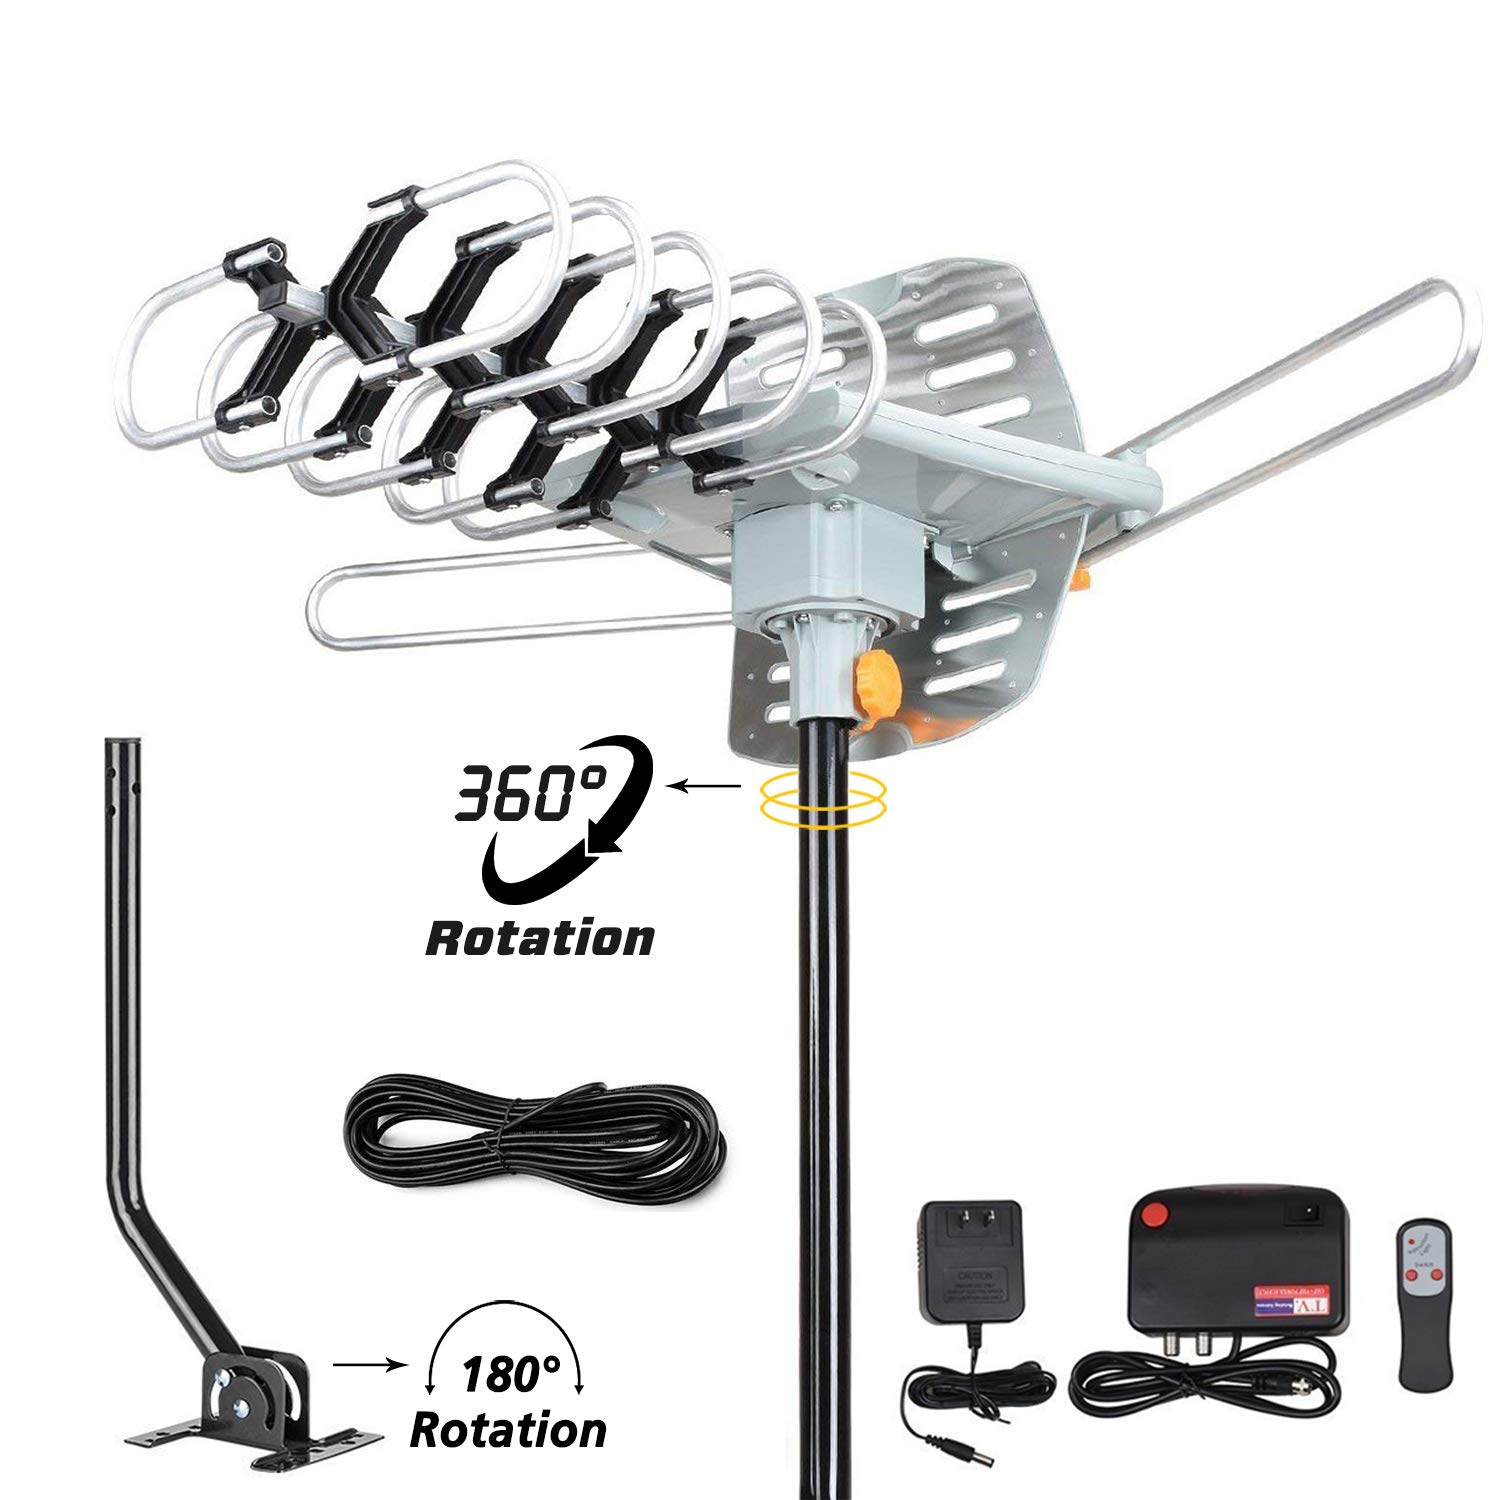 TV Antenna-150 Miles Range Amplified Digital Outdoor HDTV Antenna with Mounting Pole & 33FT RG6 Coax Cable-360 Degree Rotation Wireless Remote-Snap-On Installation Support 2 TVs by PACOSO